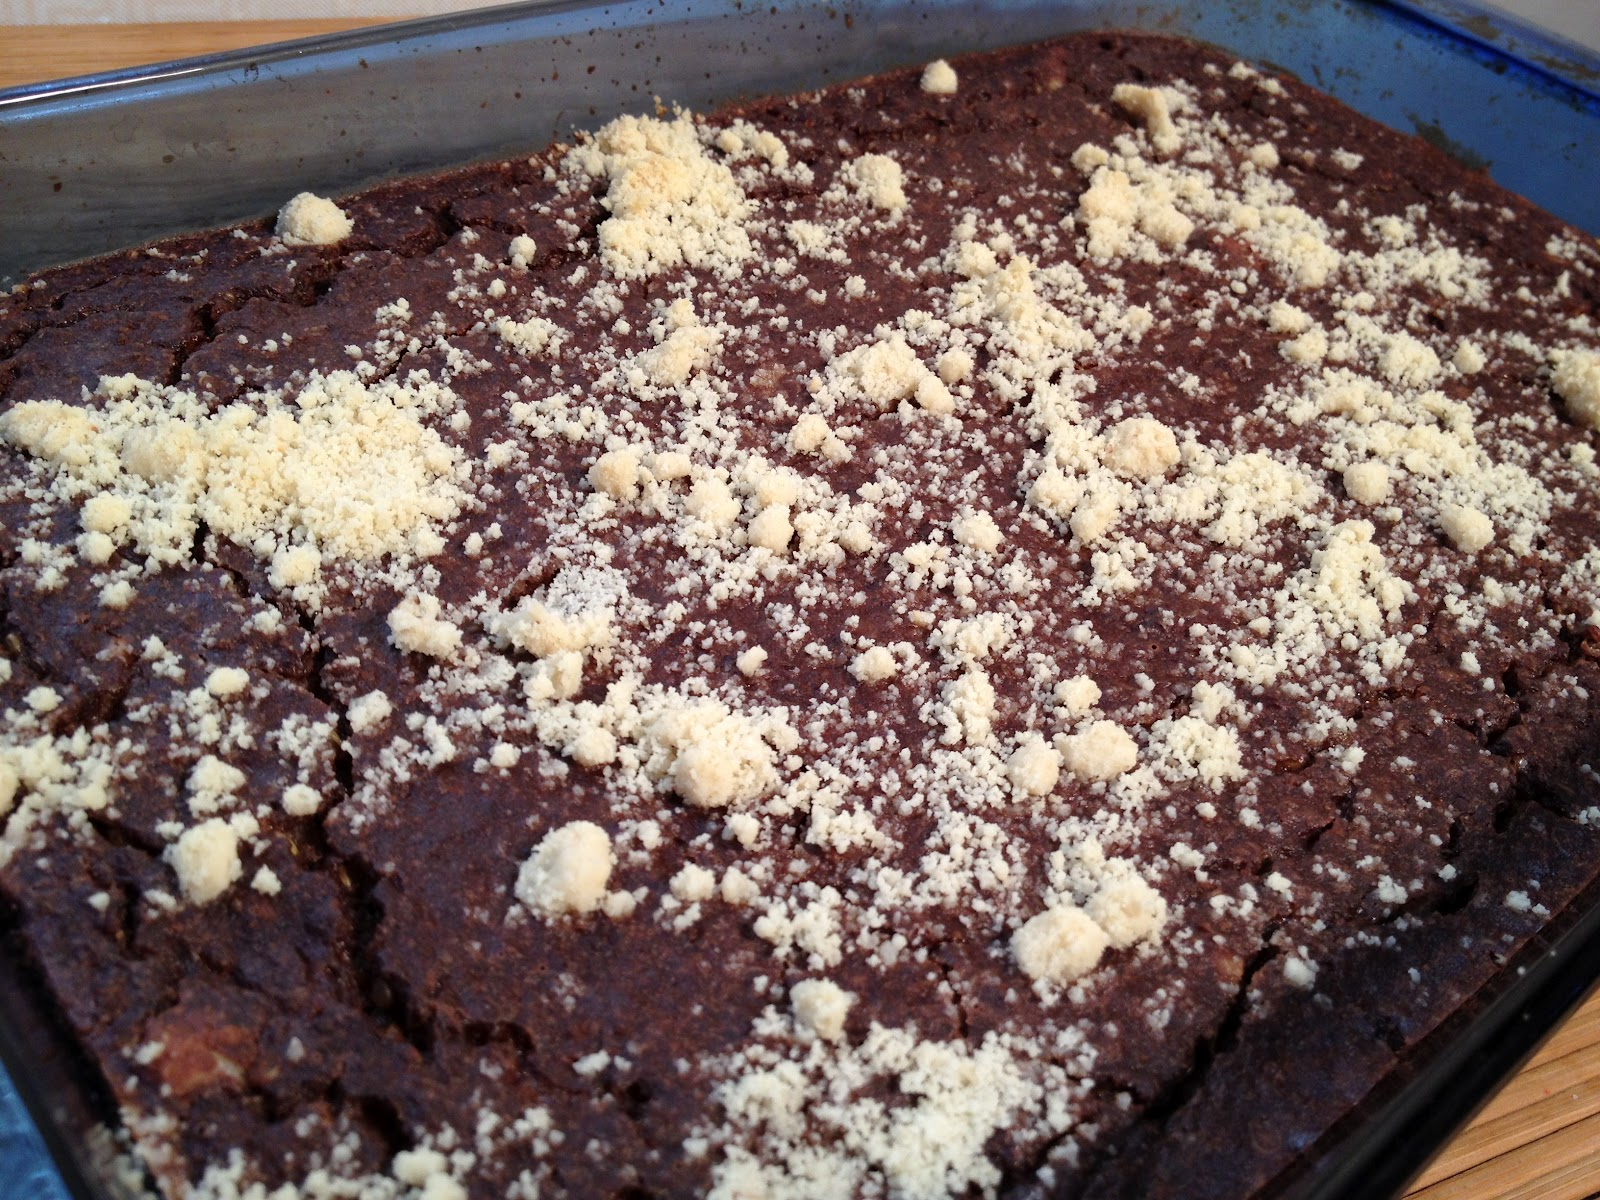 ... day 140: Cocoa-almond baked breakfast quinoa | eating from scratch